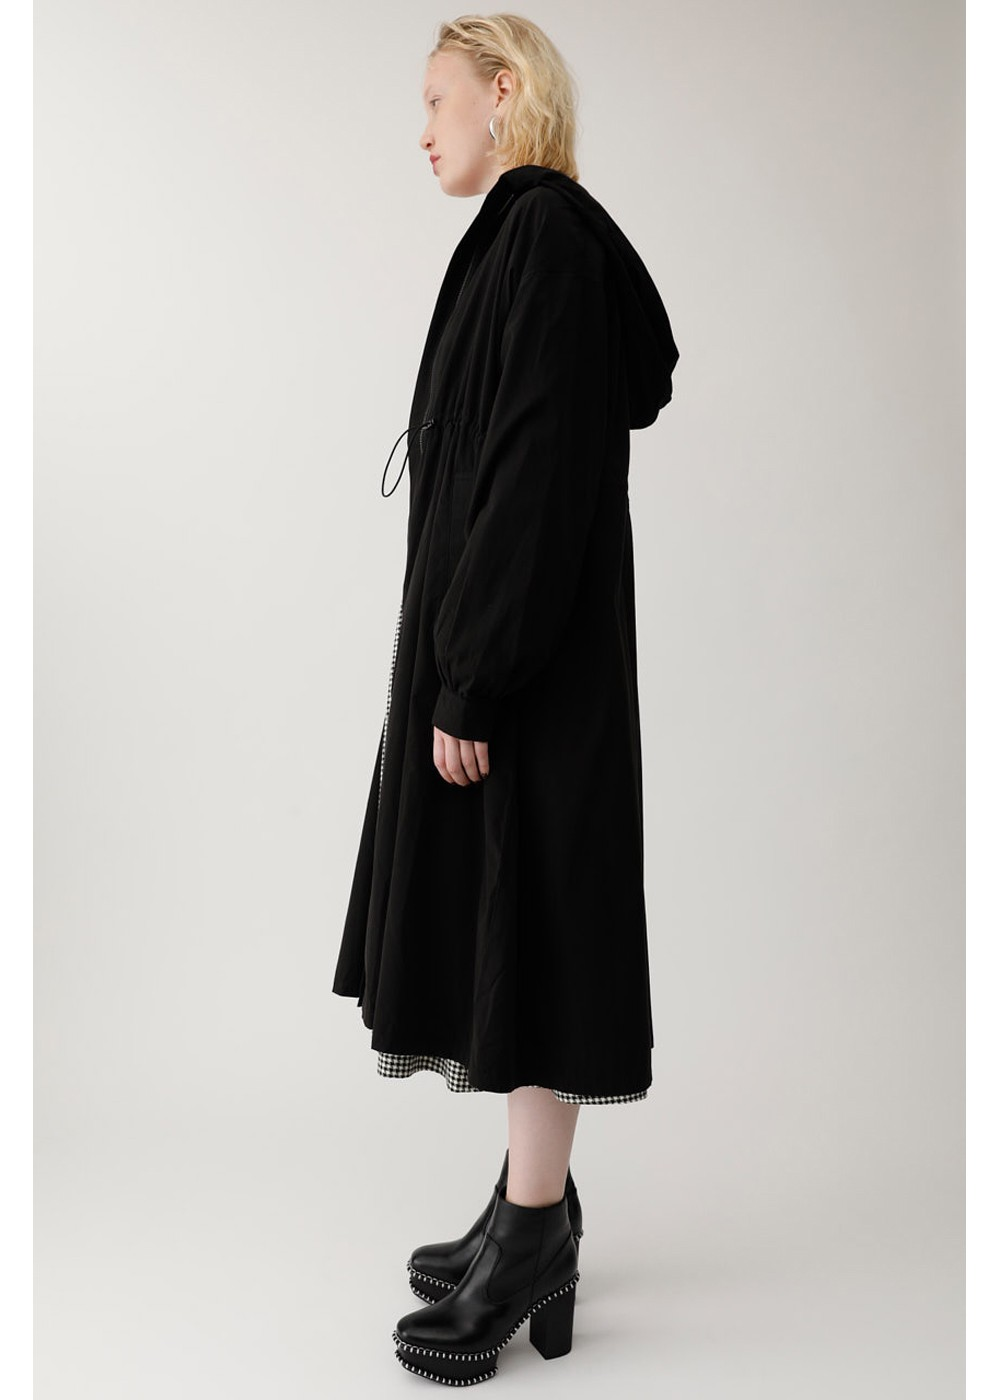 【最大60%OFF】HOODIE LONG COAT|BLK|モッズコート|MOUSSY